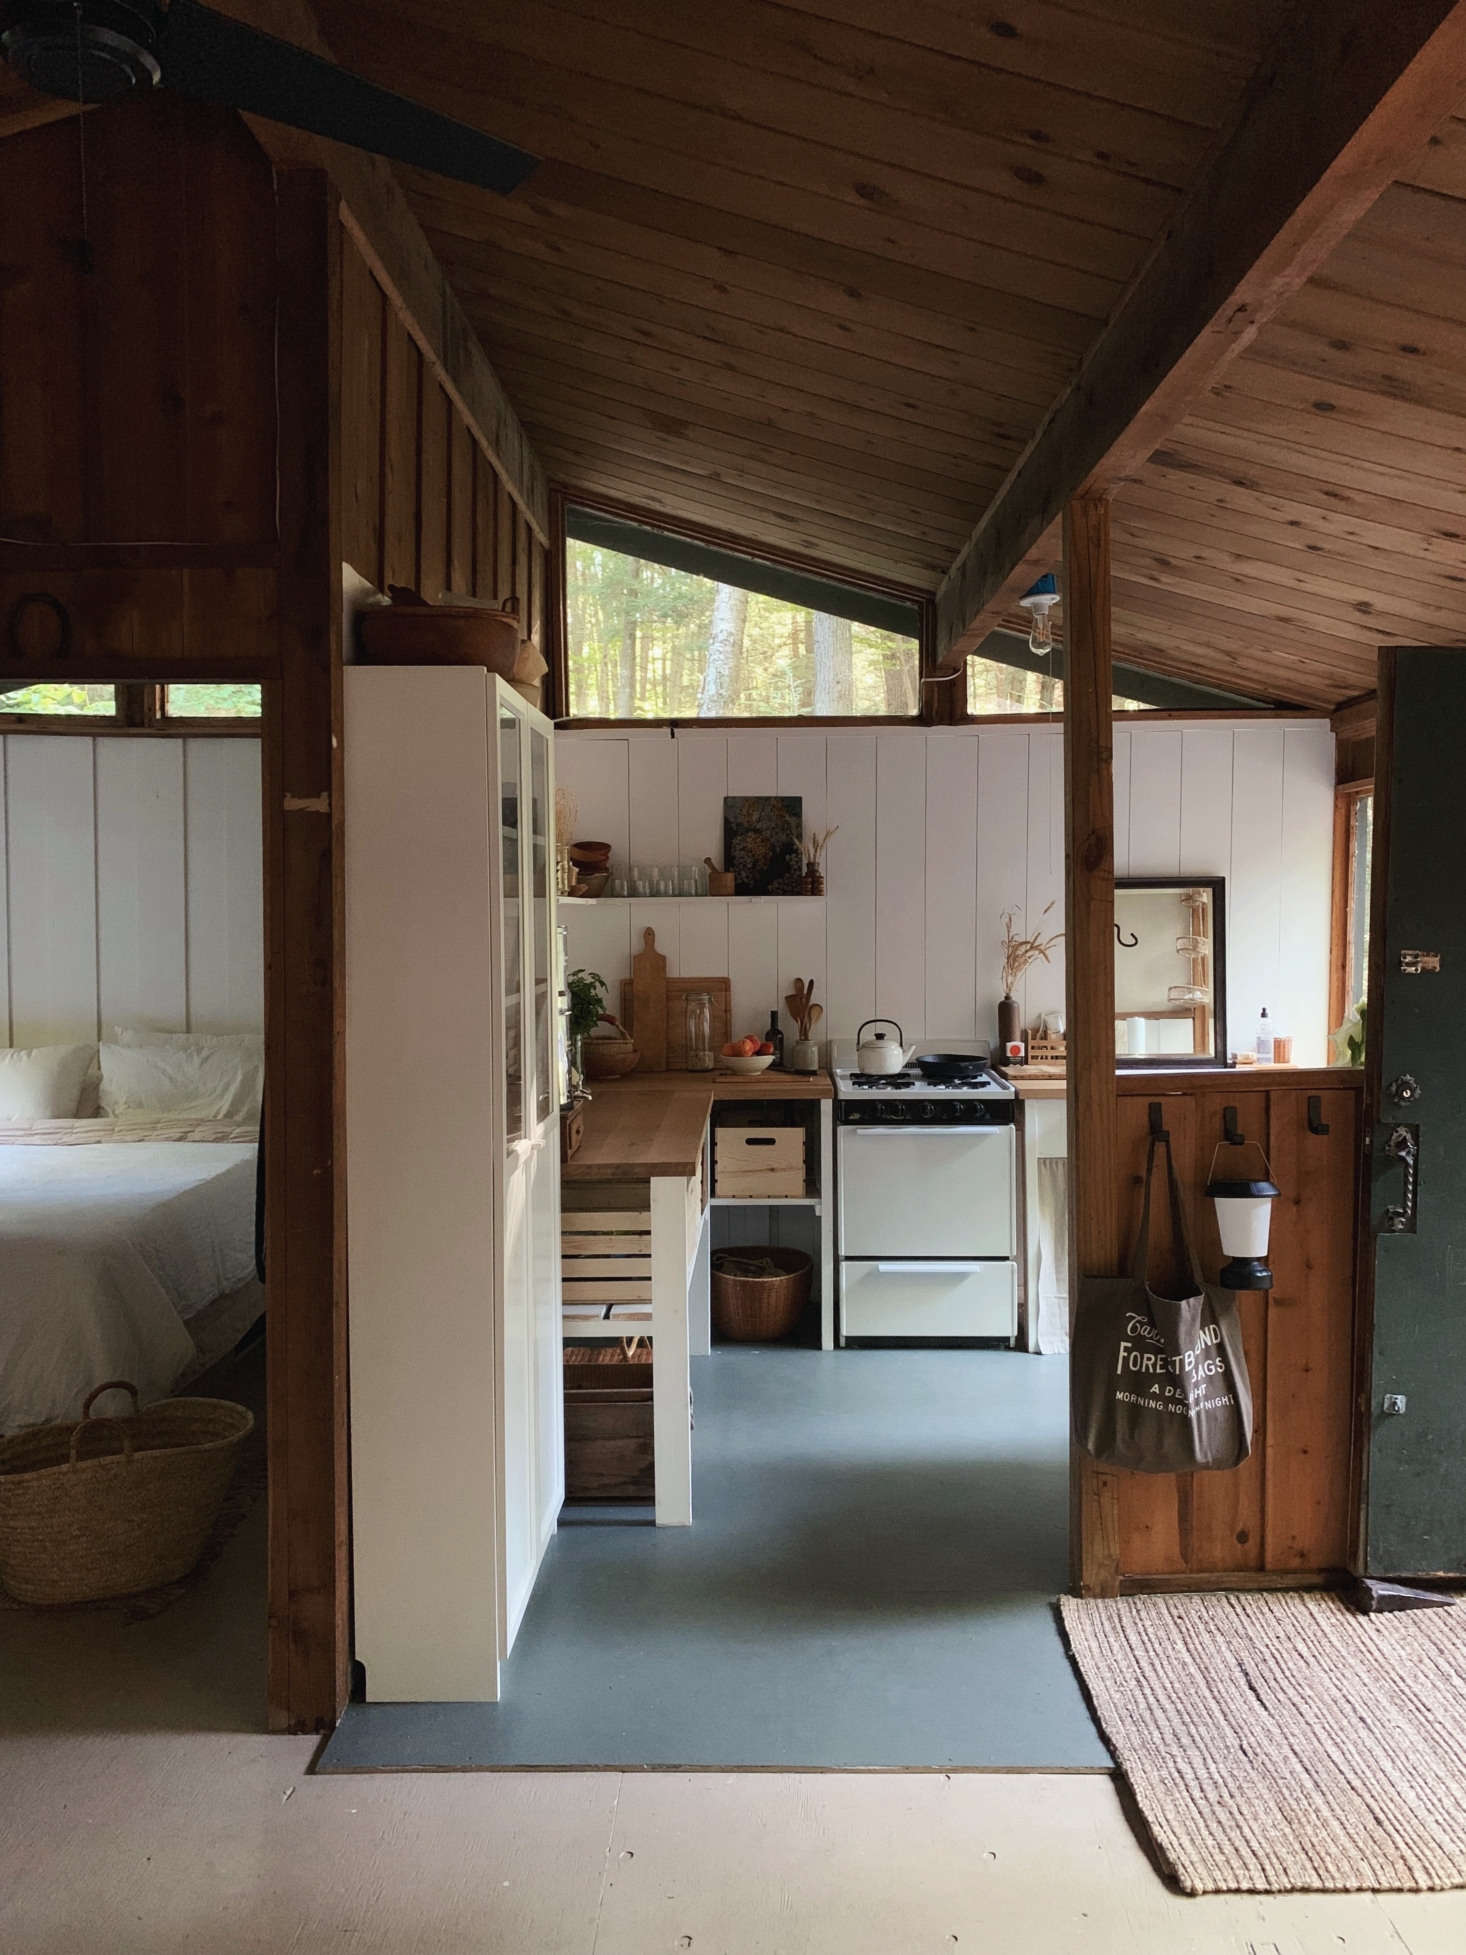 Inside the small cabin, with the newly rehabbed kitchen straight ahead.